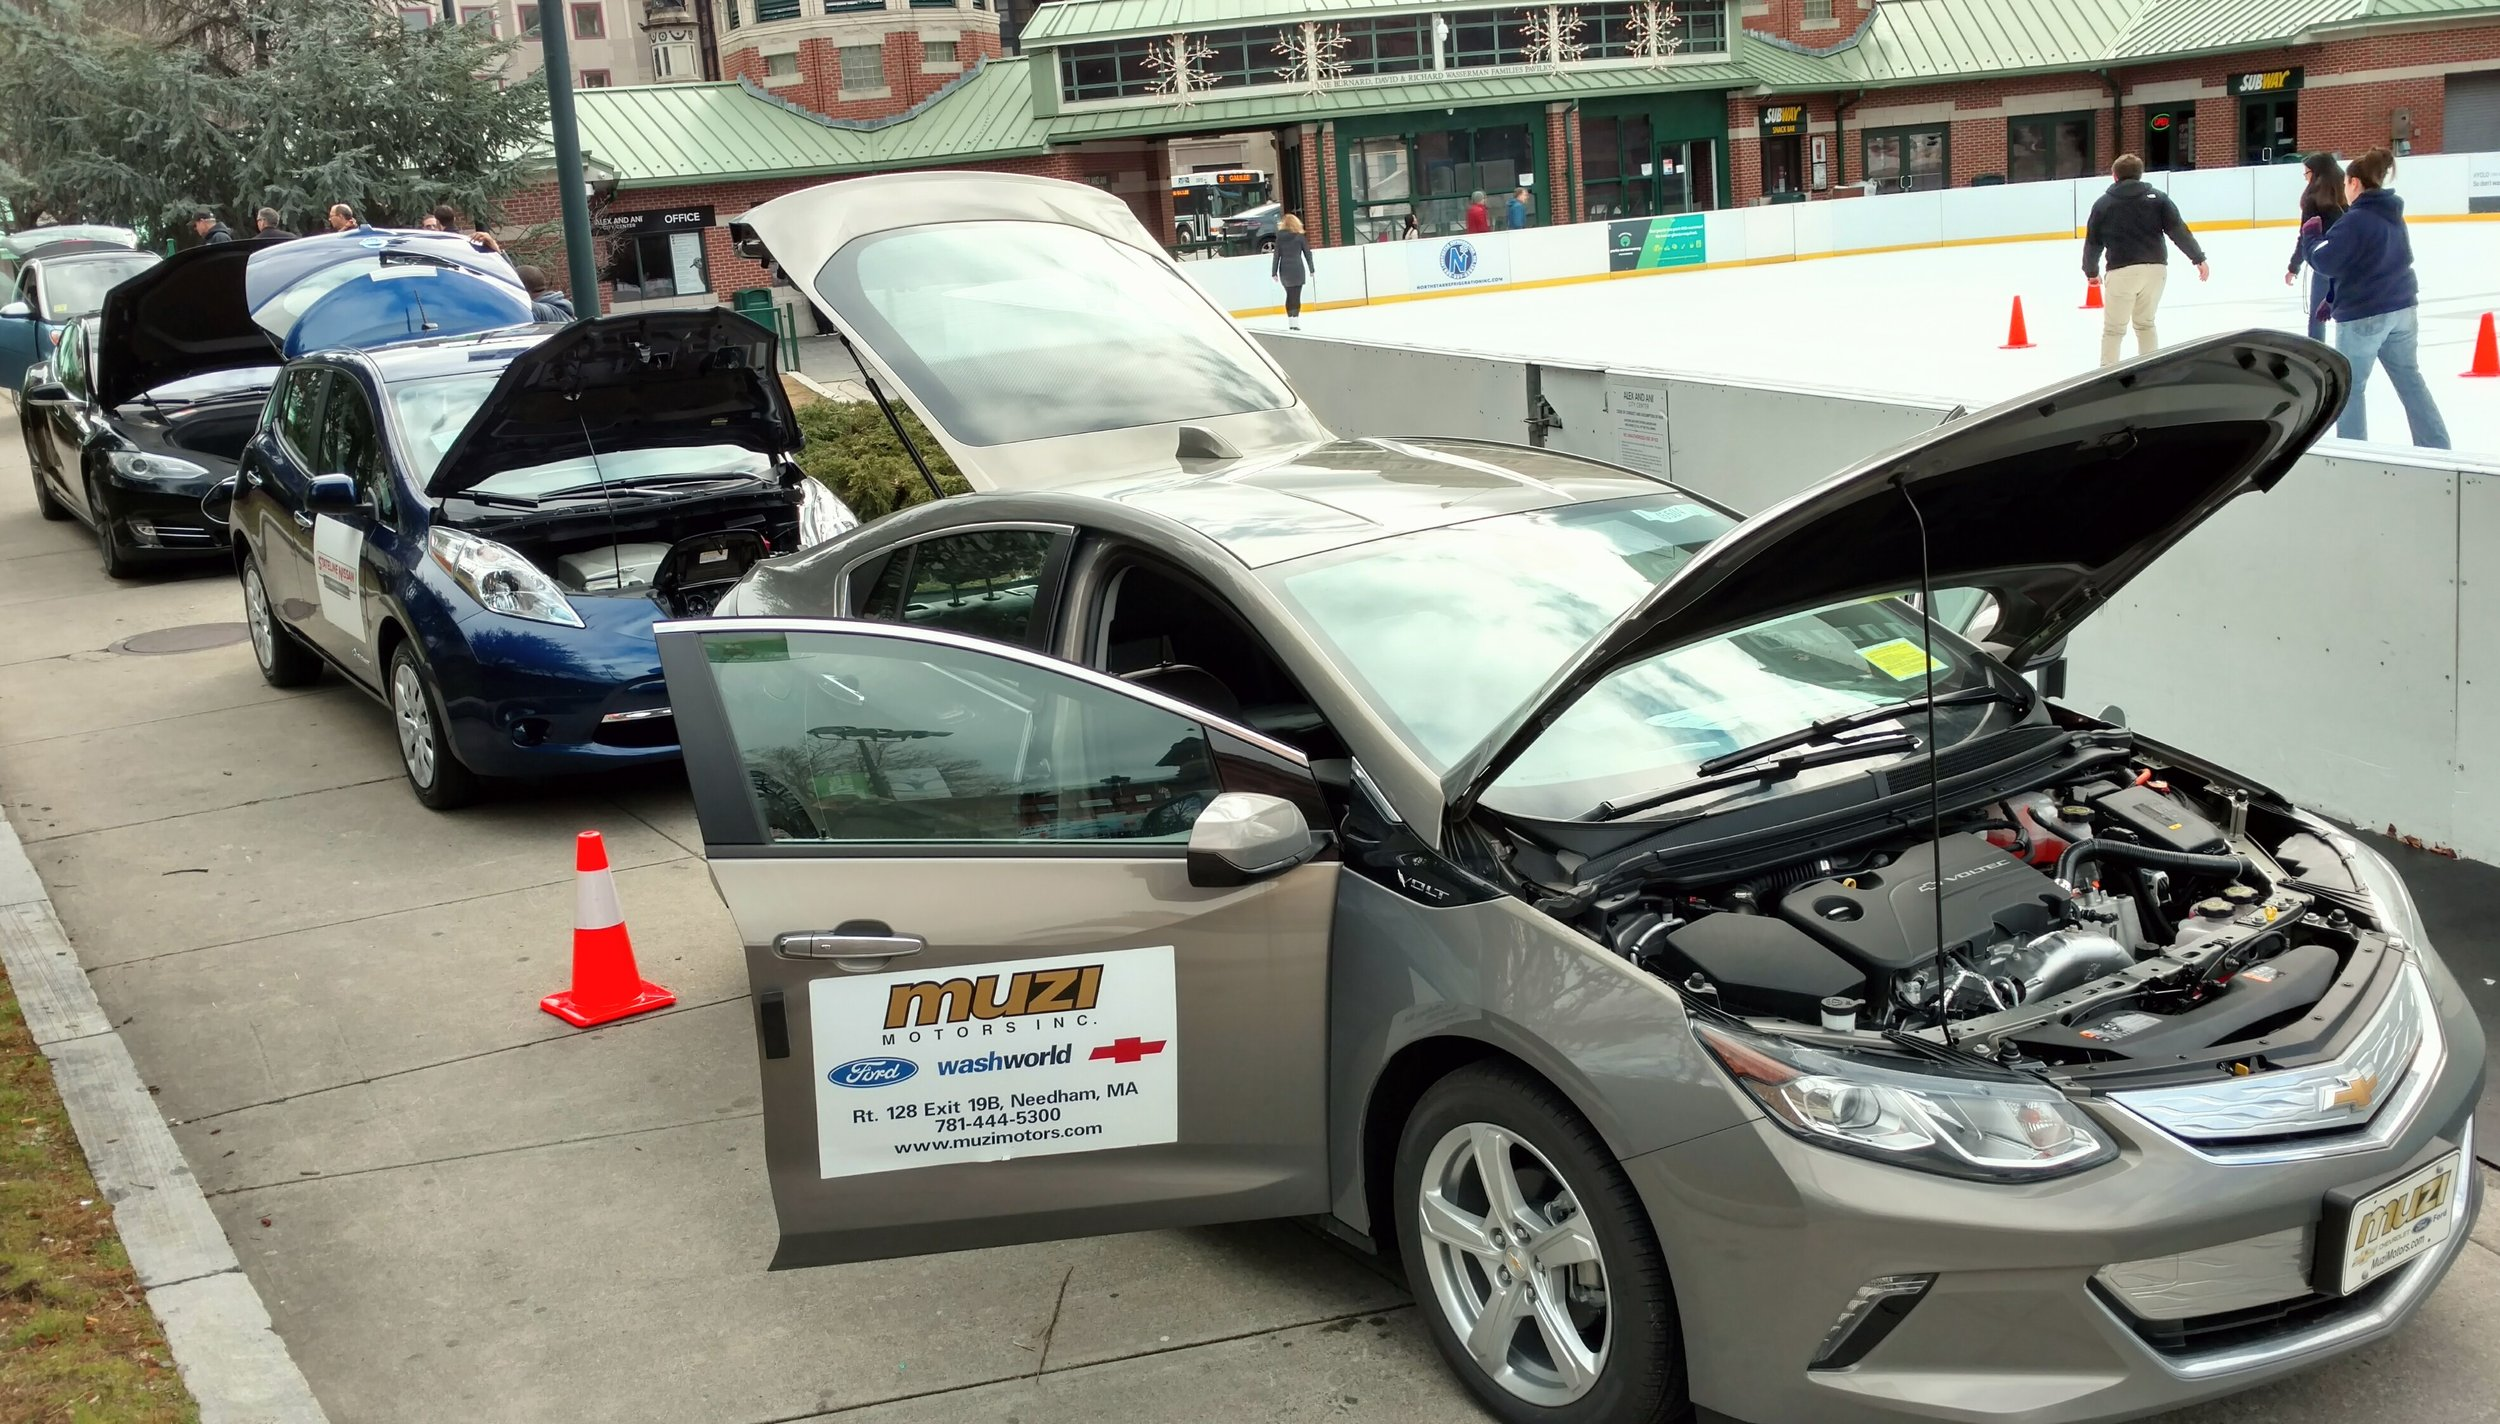 The deals are getting better for electric vehicles, such as these featured during a Jan.19 promotion at the downtown Providence outdoor ice rink. (Tim Faulkner/ecoRI News)